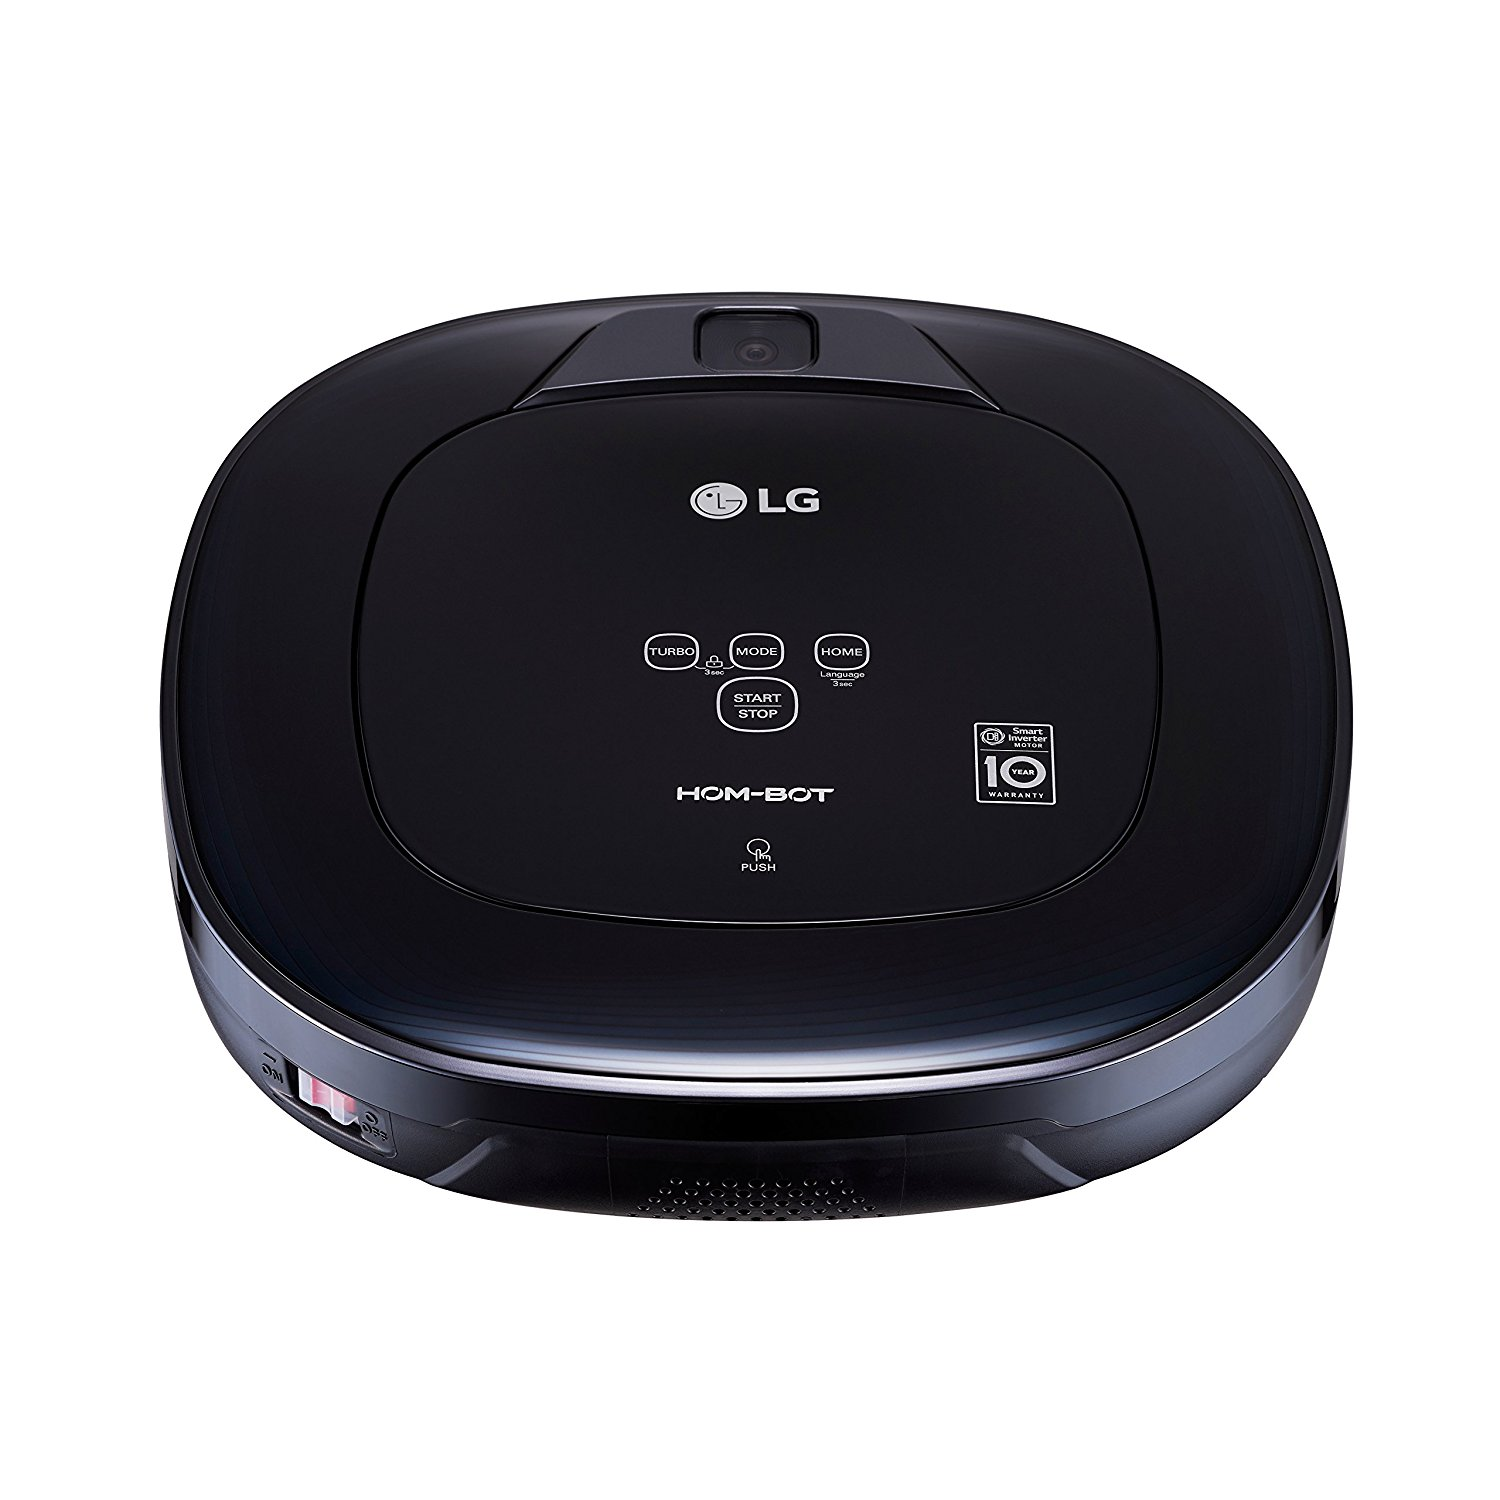 LG Hom-Bot Square Robotic Vacuum with Mop